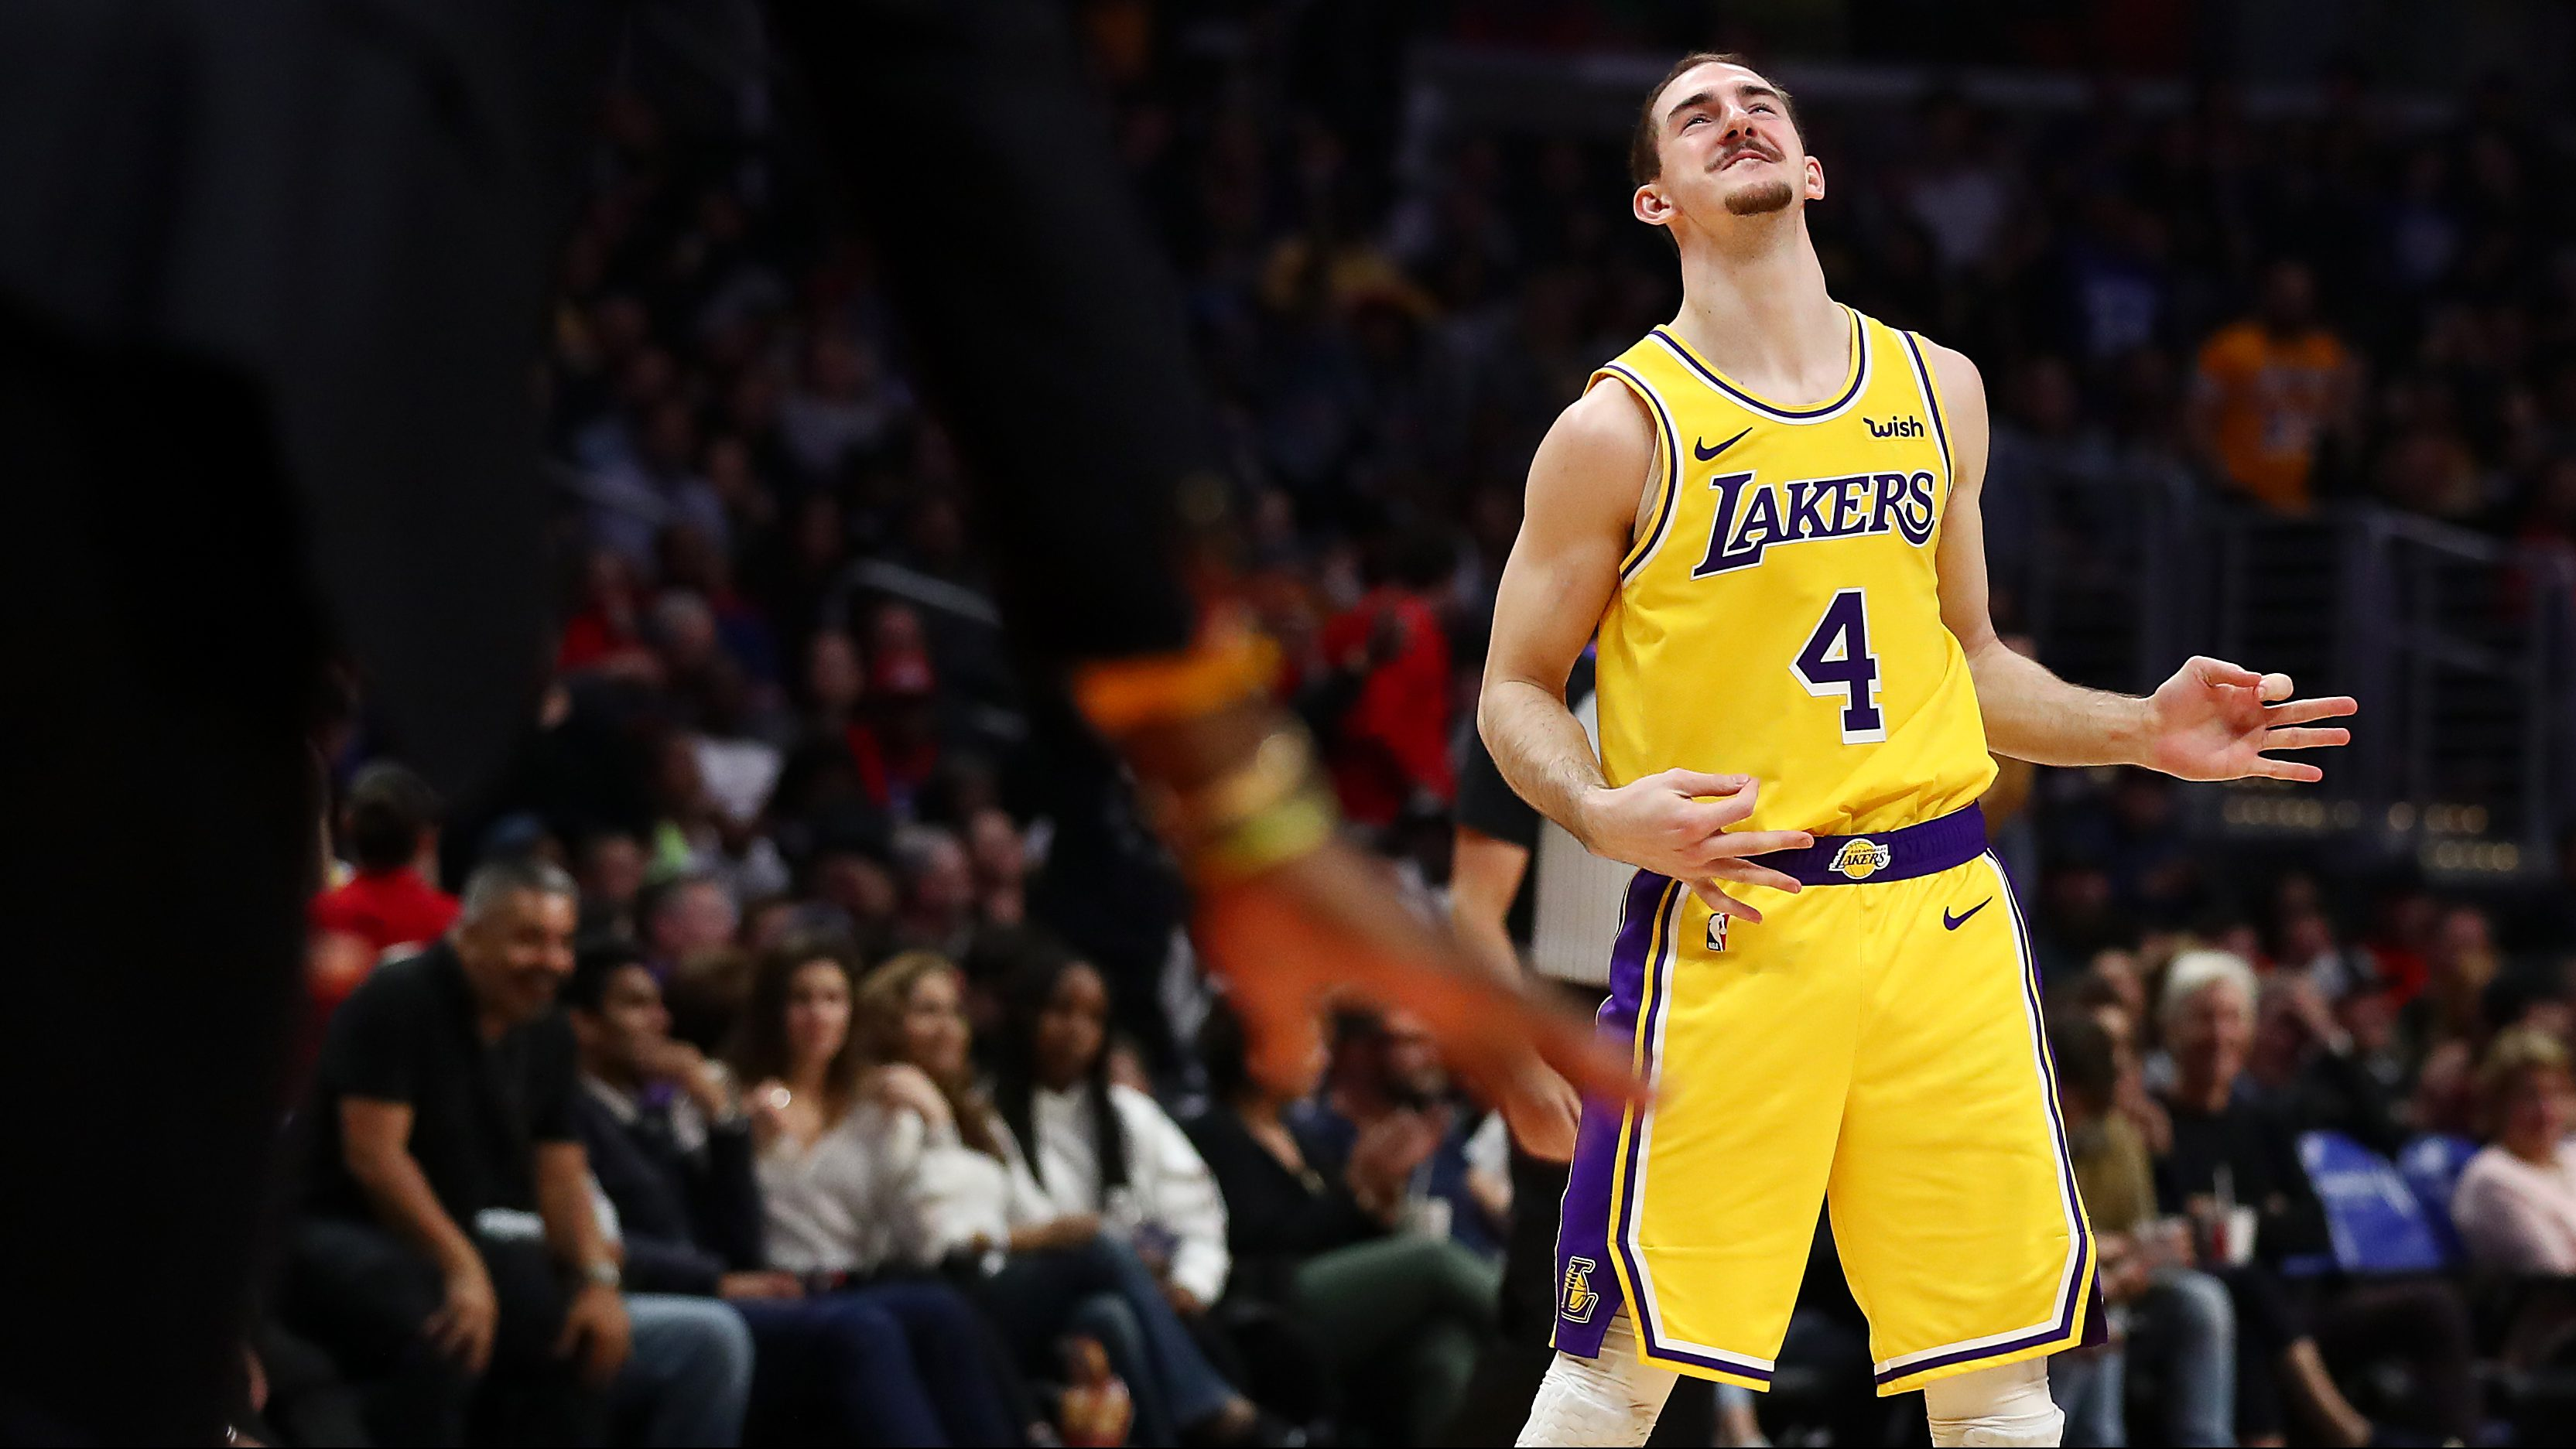 Rihanna Caught Checking Out Lakers Alex Caruso Heavy Com